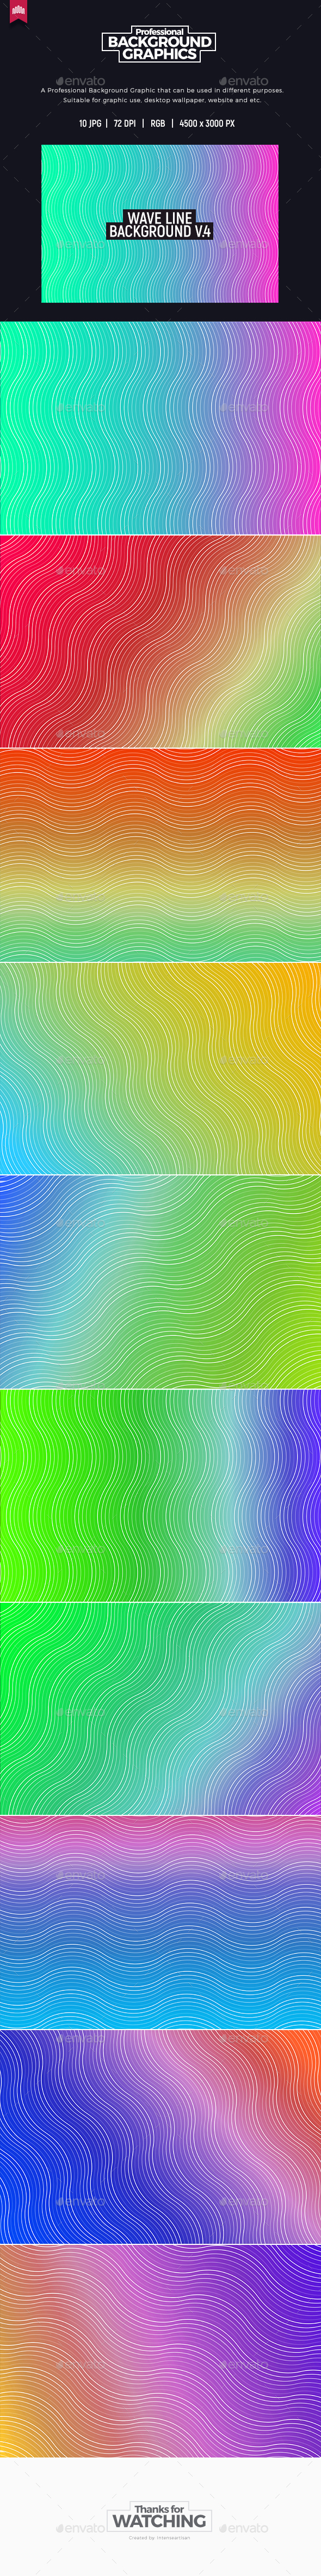 Wave Line Background V.4 - Patterns Backgrounds